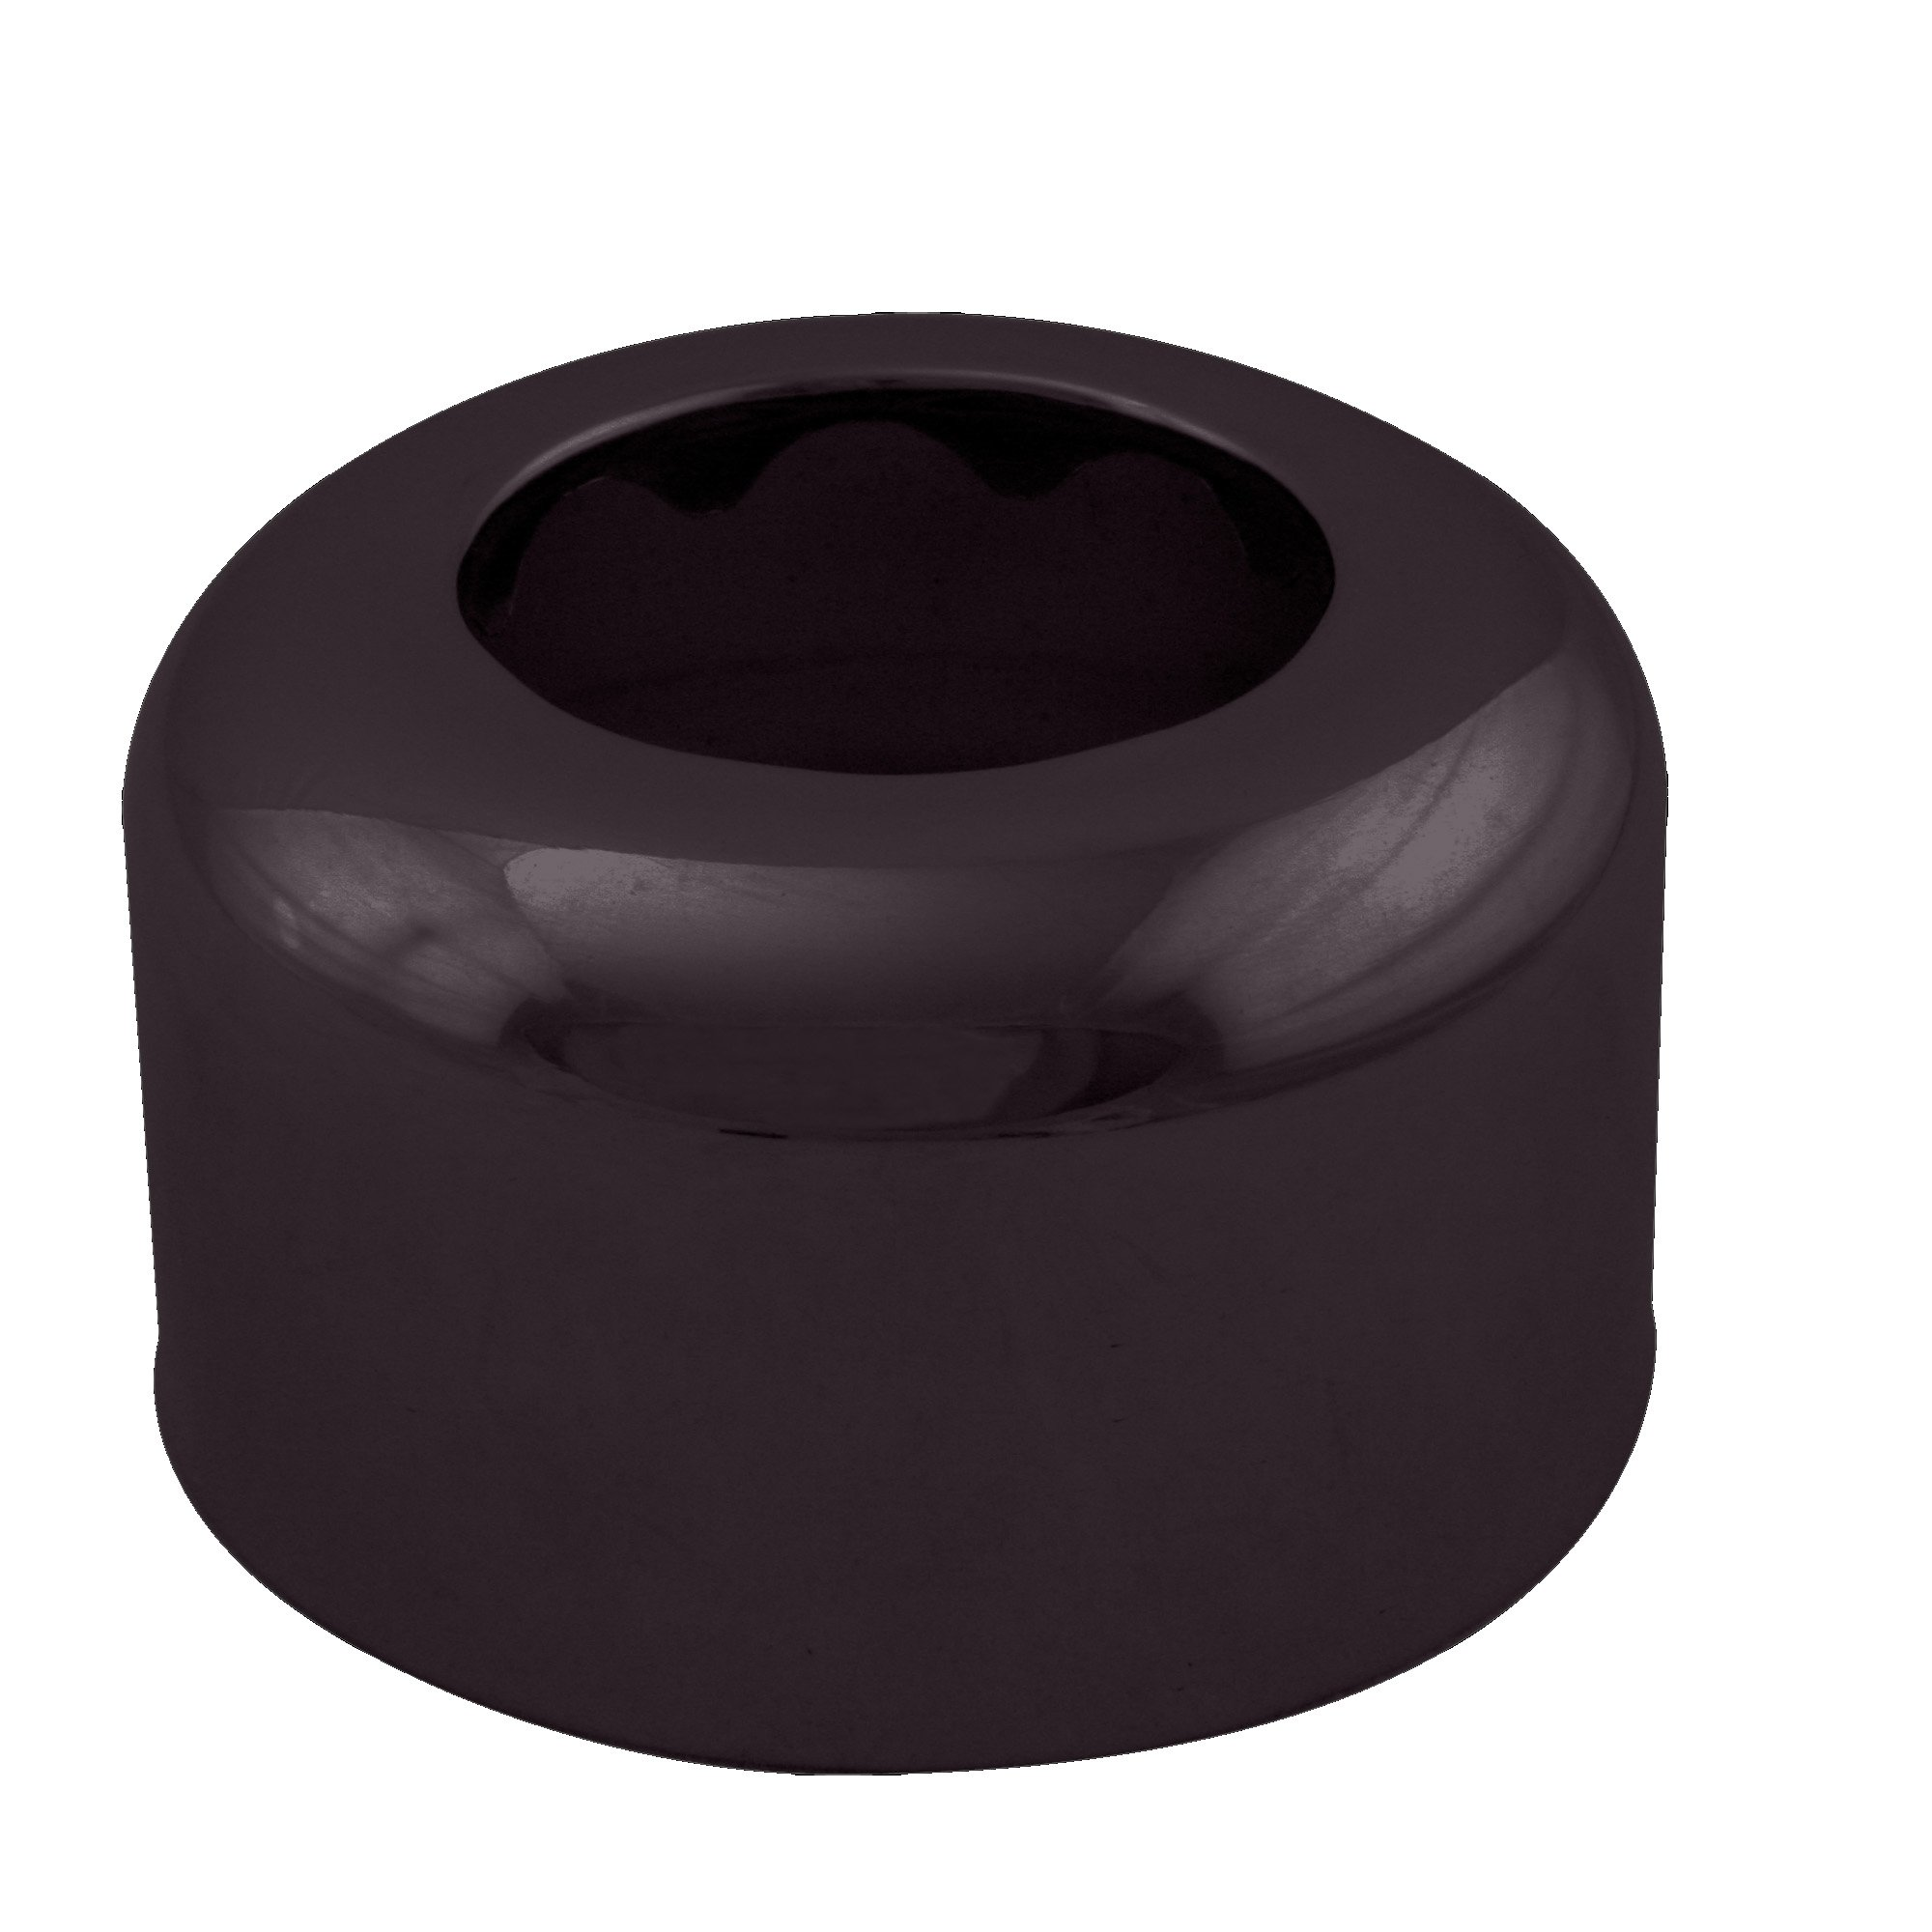 WestBrass D409 Oil Rubbed Bronze 1-1/2 in. OD High Box Sure Grip Flange by Westbrass